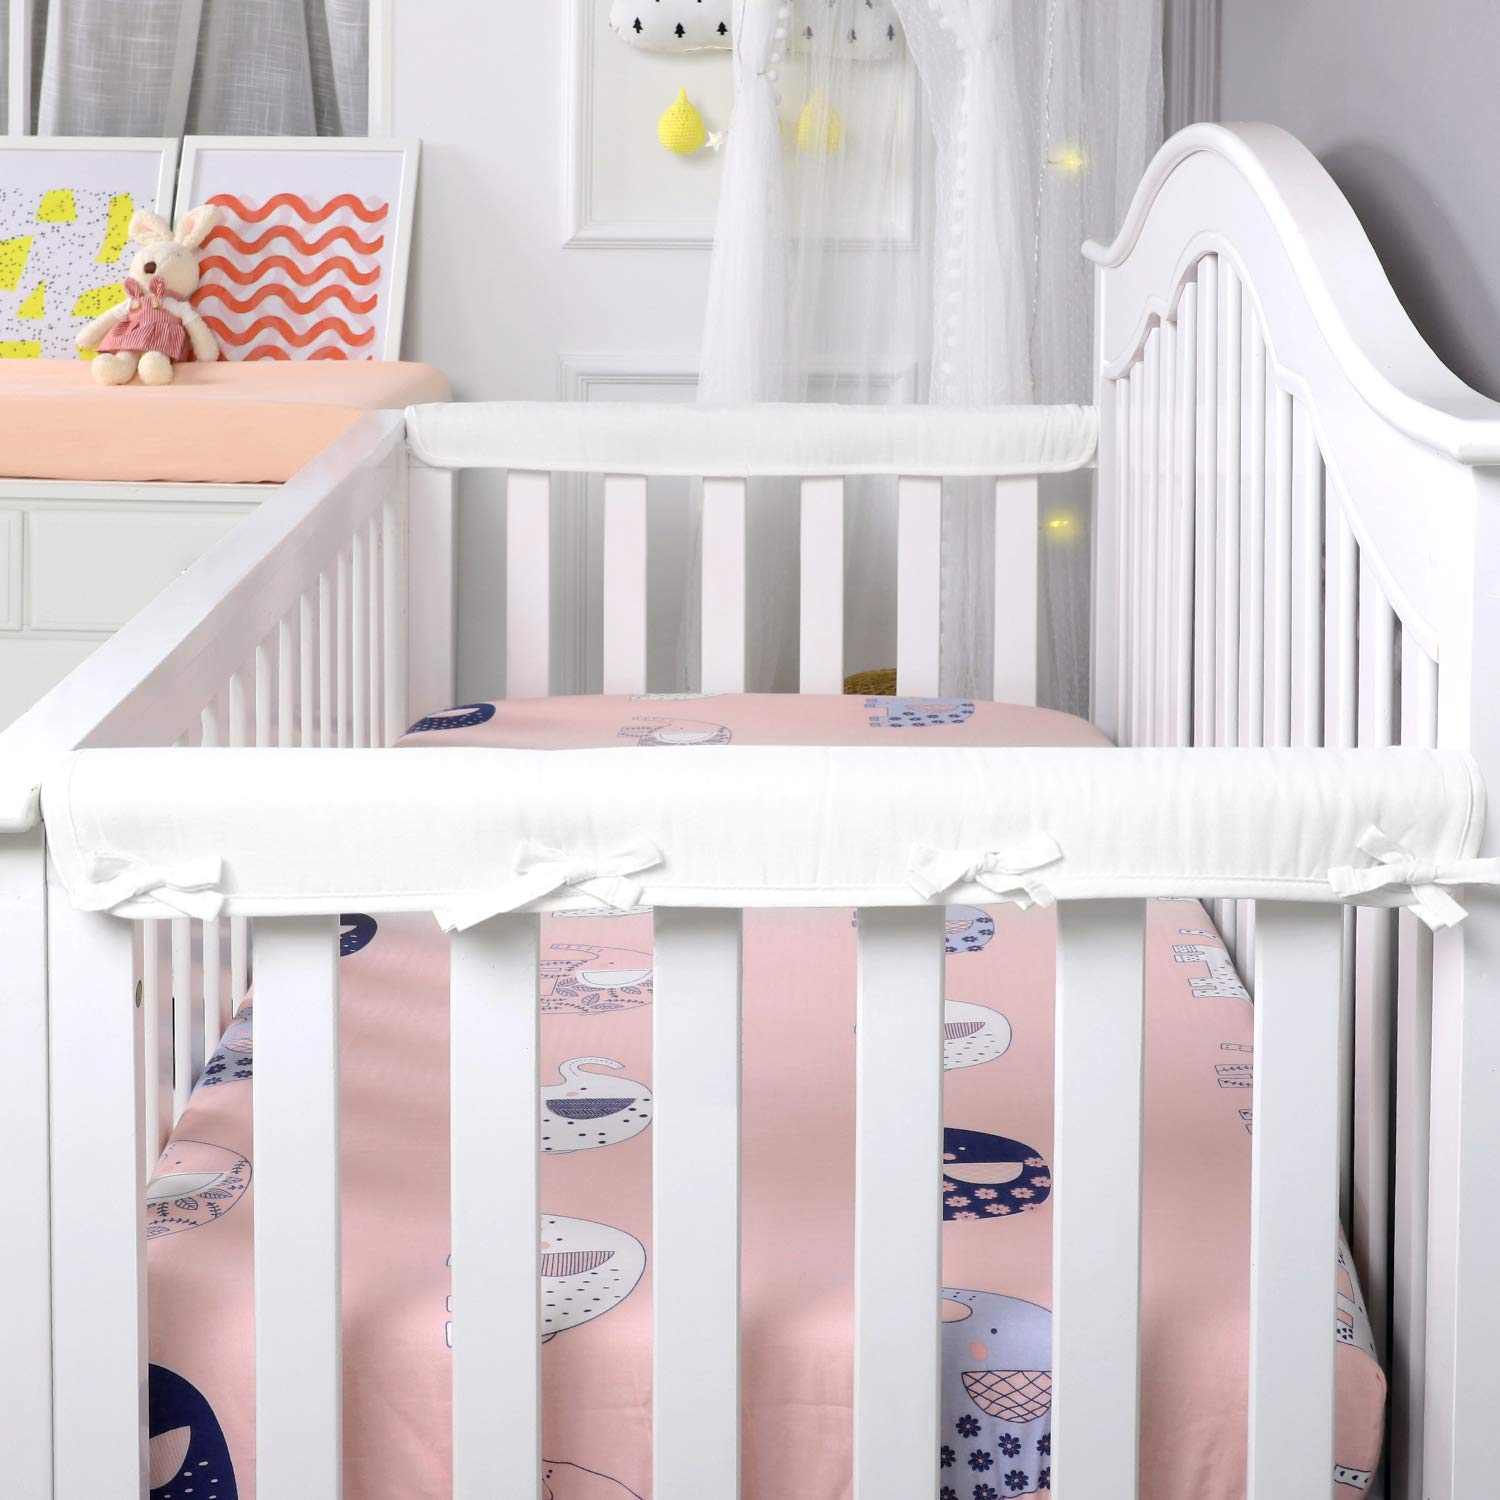 U.S. Peachy Pink Designthology 100/% Cotton Muslin 2-Pack Super Breathable Narrow Crib Rail Cover for 2 Side Rails for Rails Measuring up to 8 Around